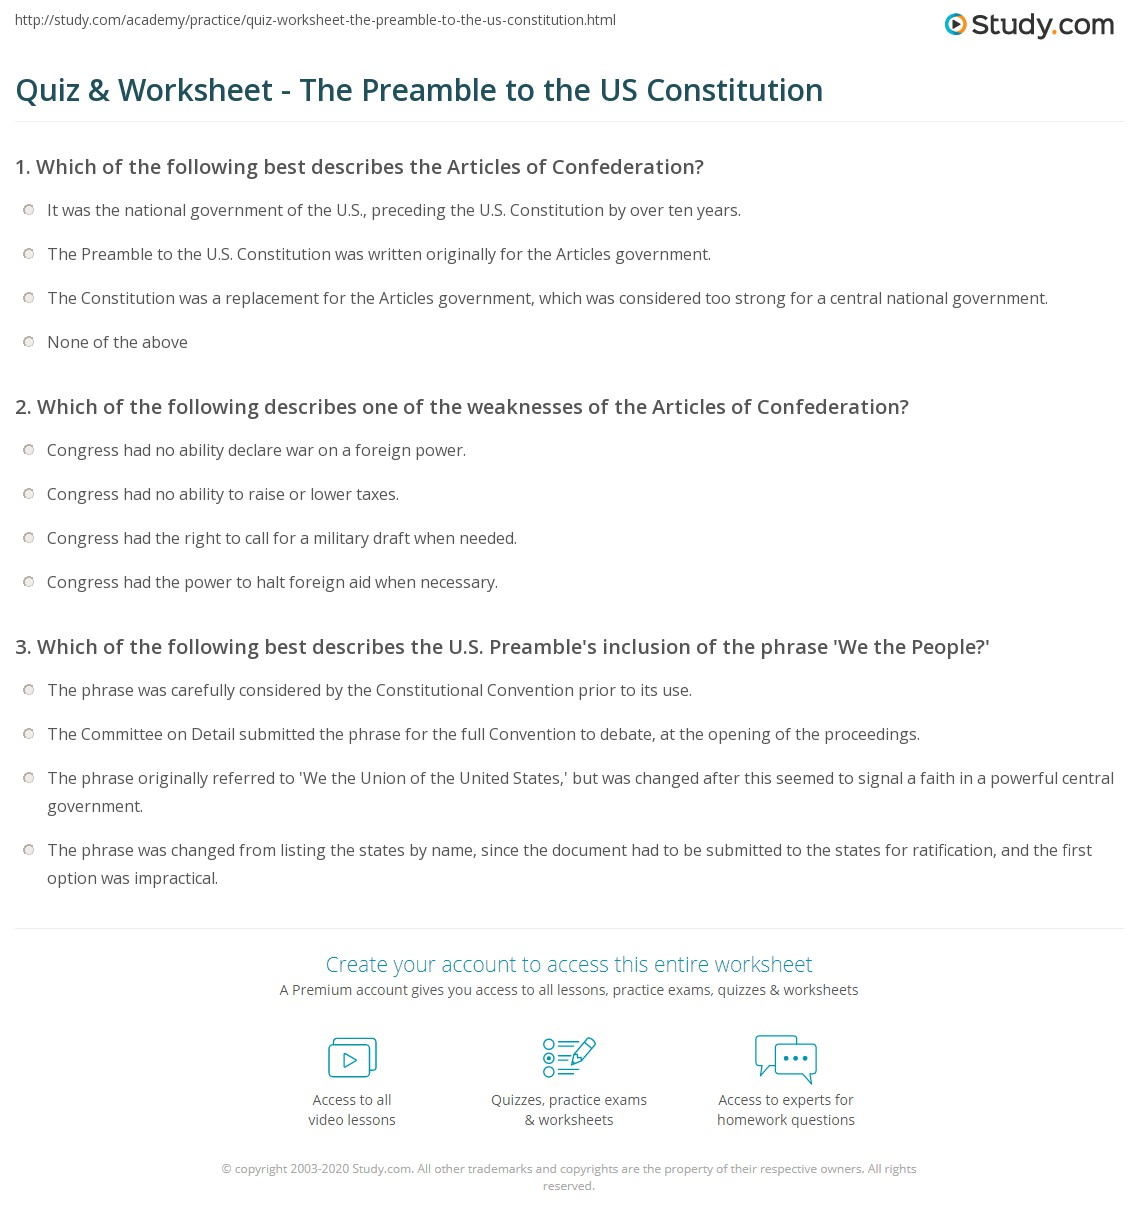 Quiz & Worksheet - The Preamble to the US Constitution | Study.com